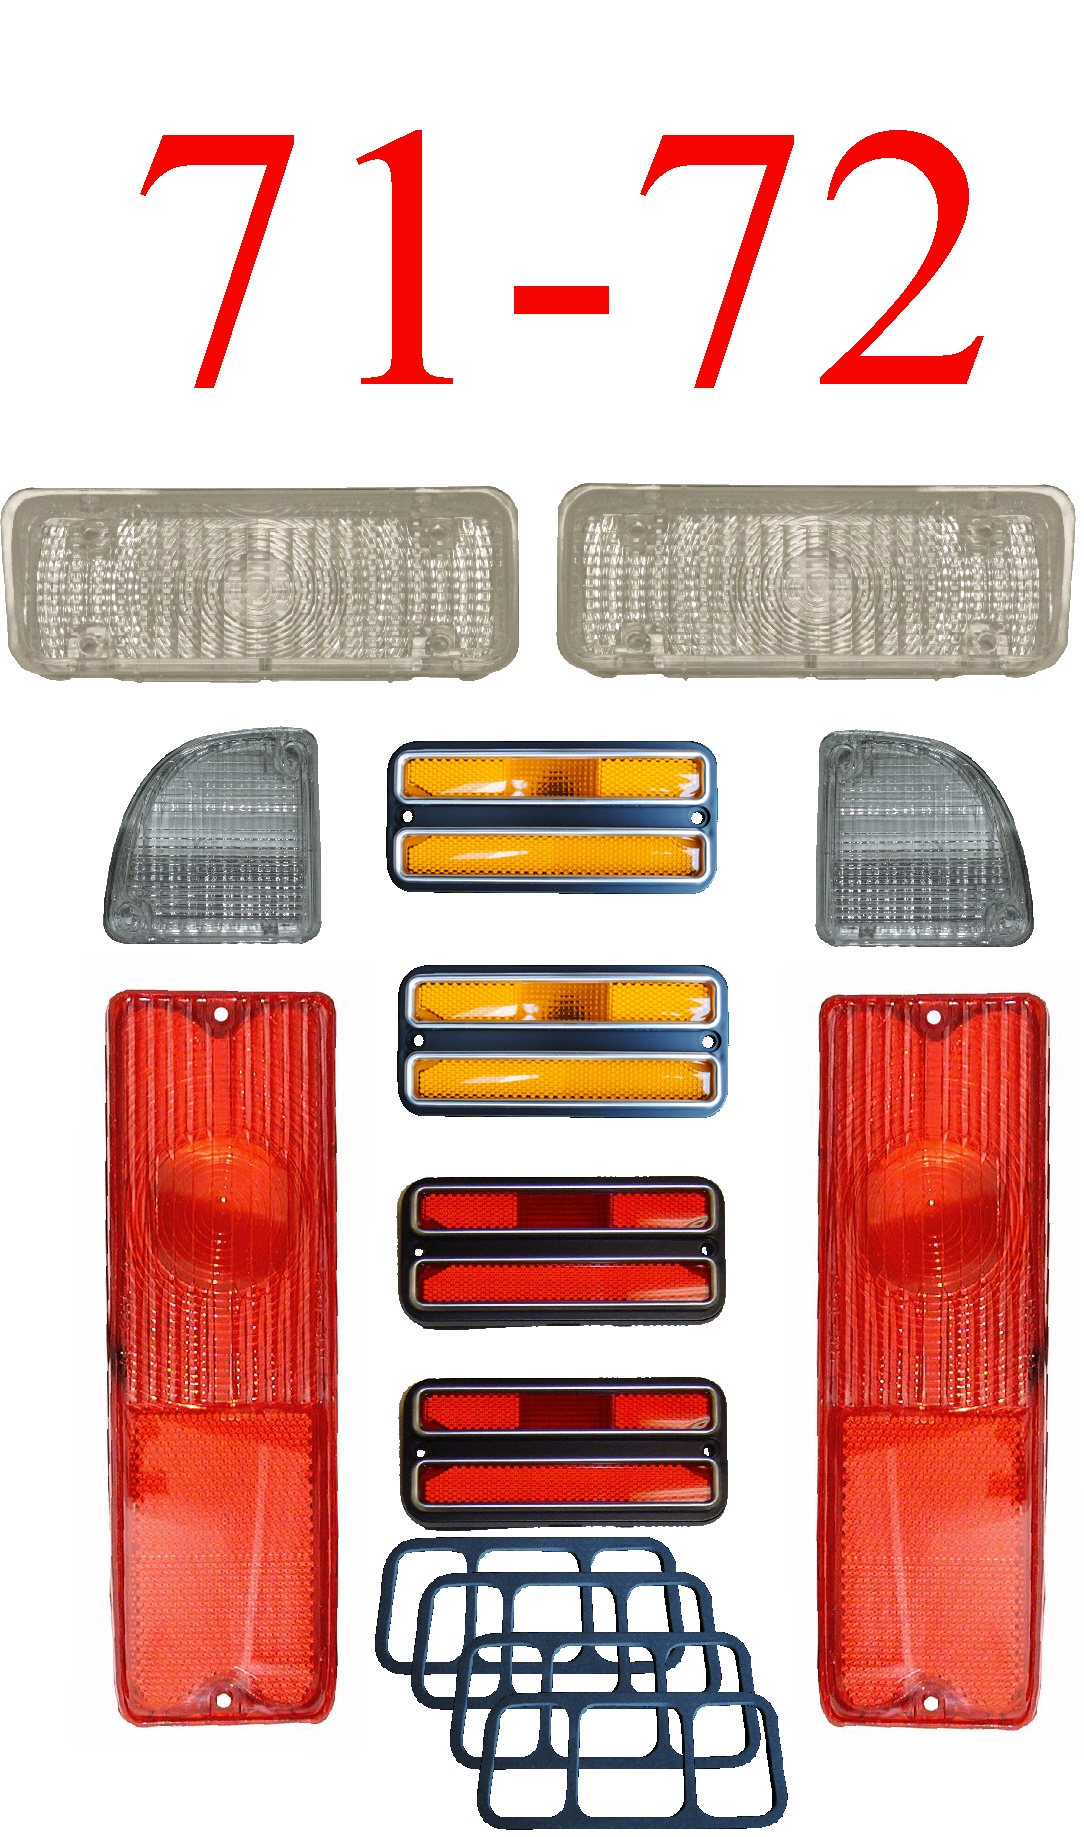 71-72 Chevy 10Pc Tail Light, Deluxe Side & Clear Parking Light